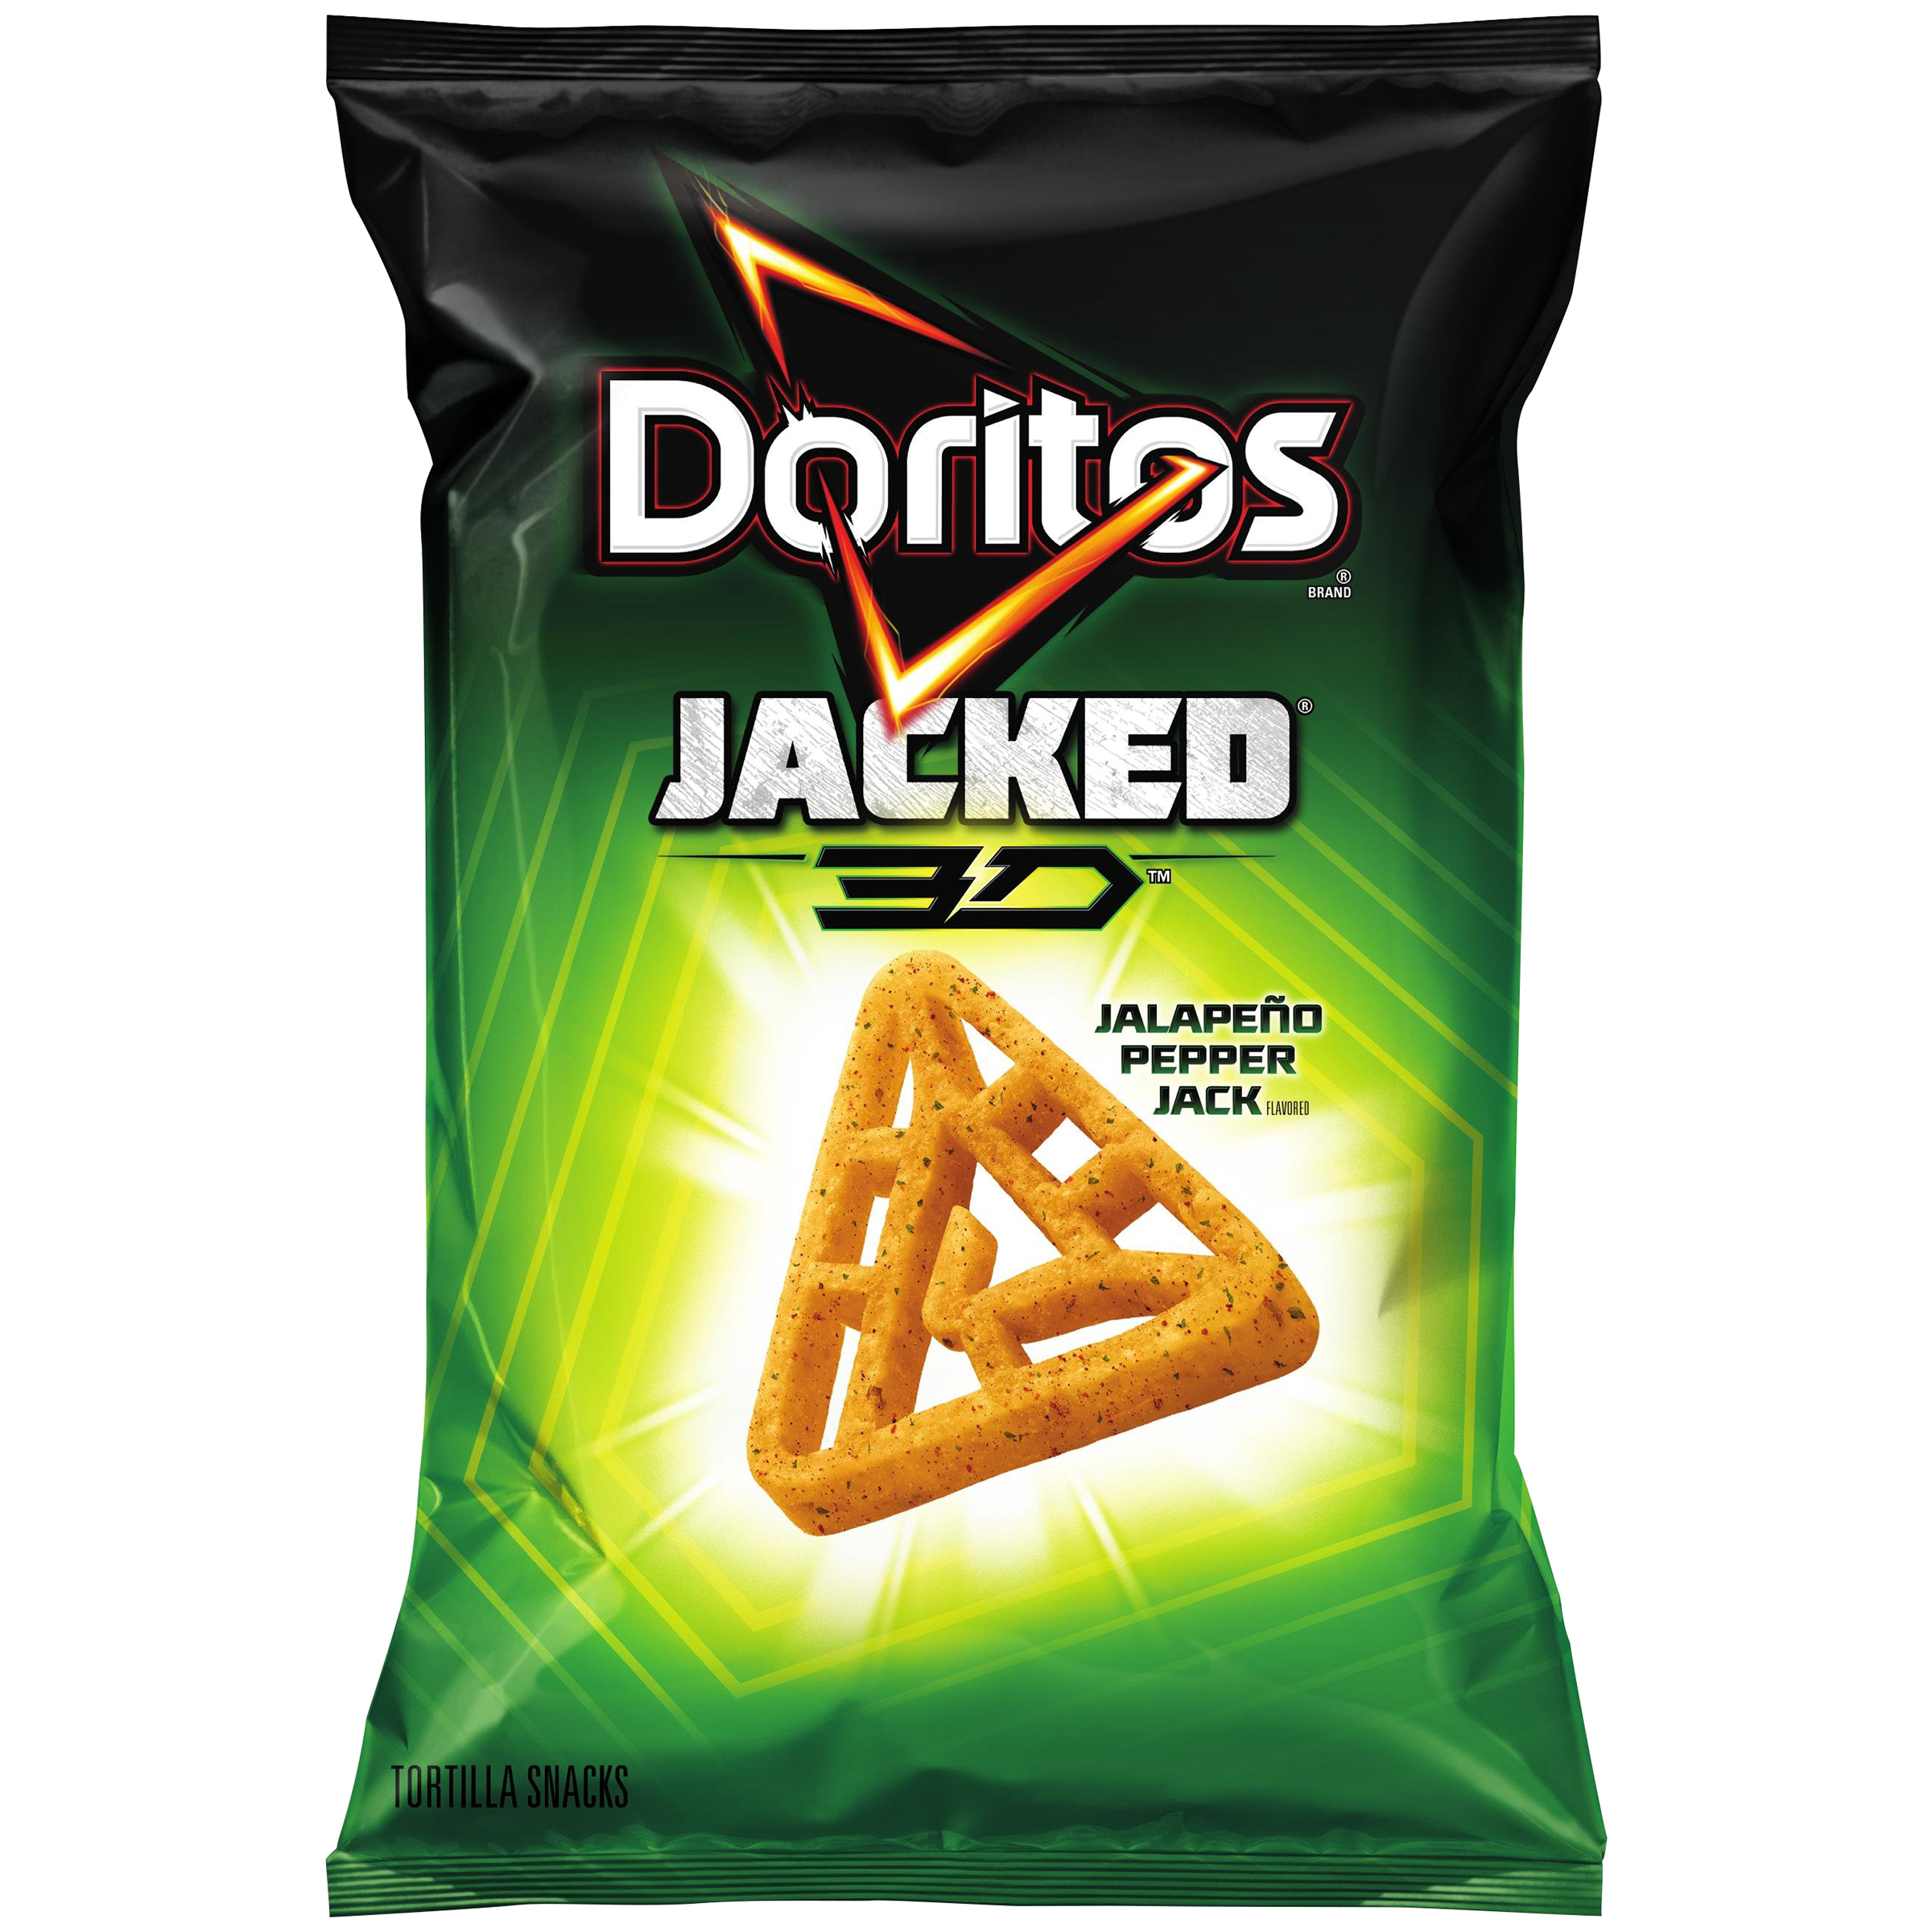 Doritos Jacked 3D Jalapeno Pepper Jack Flavored Tortilla ... 3d Doritos